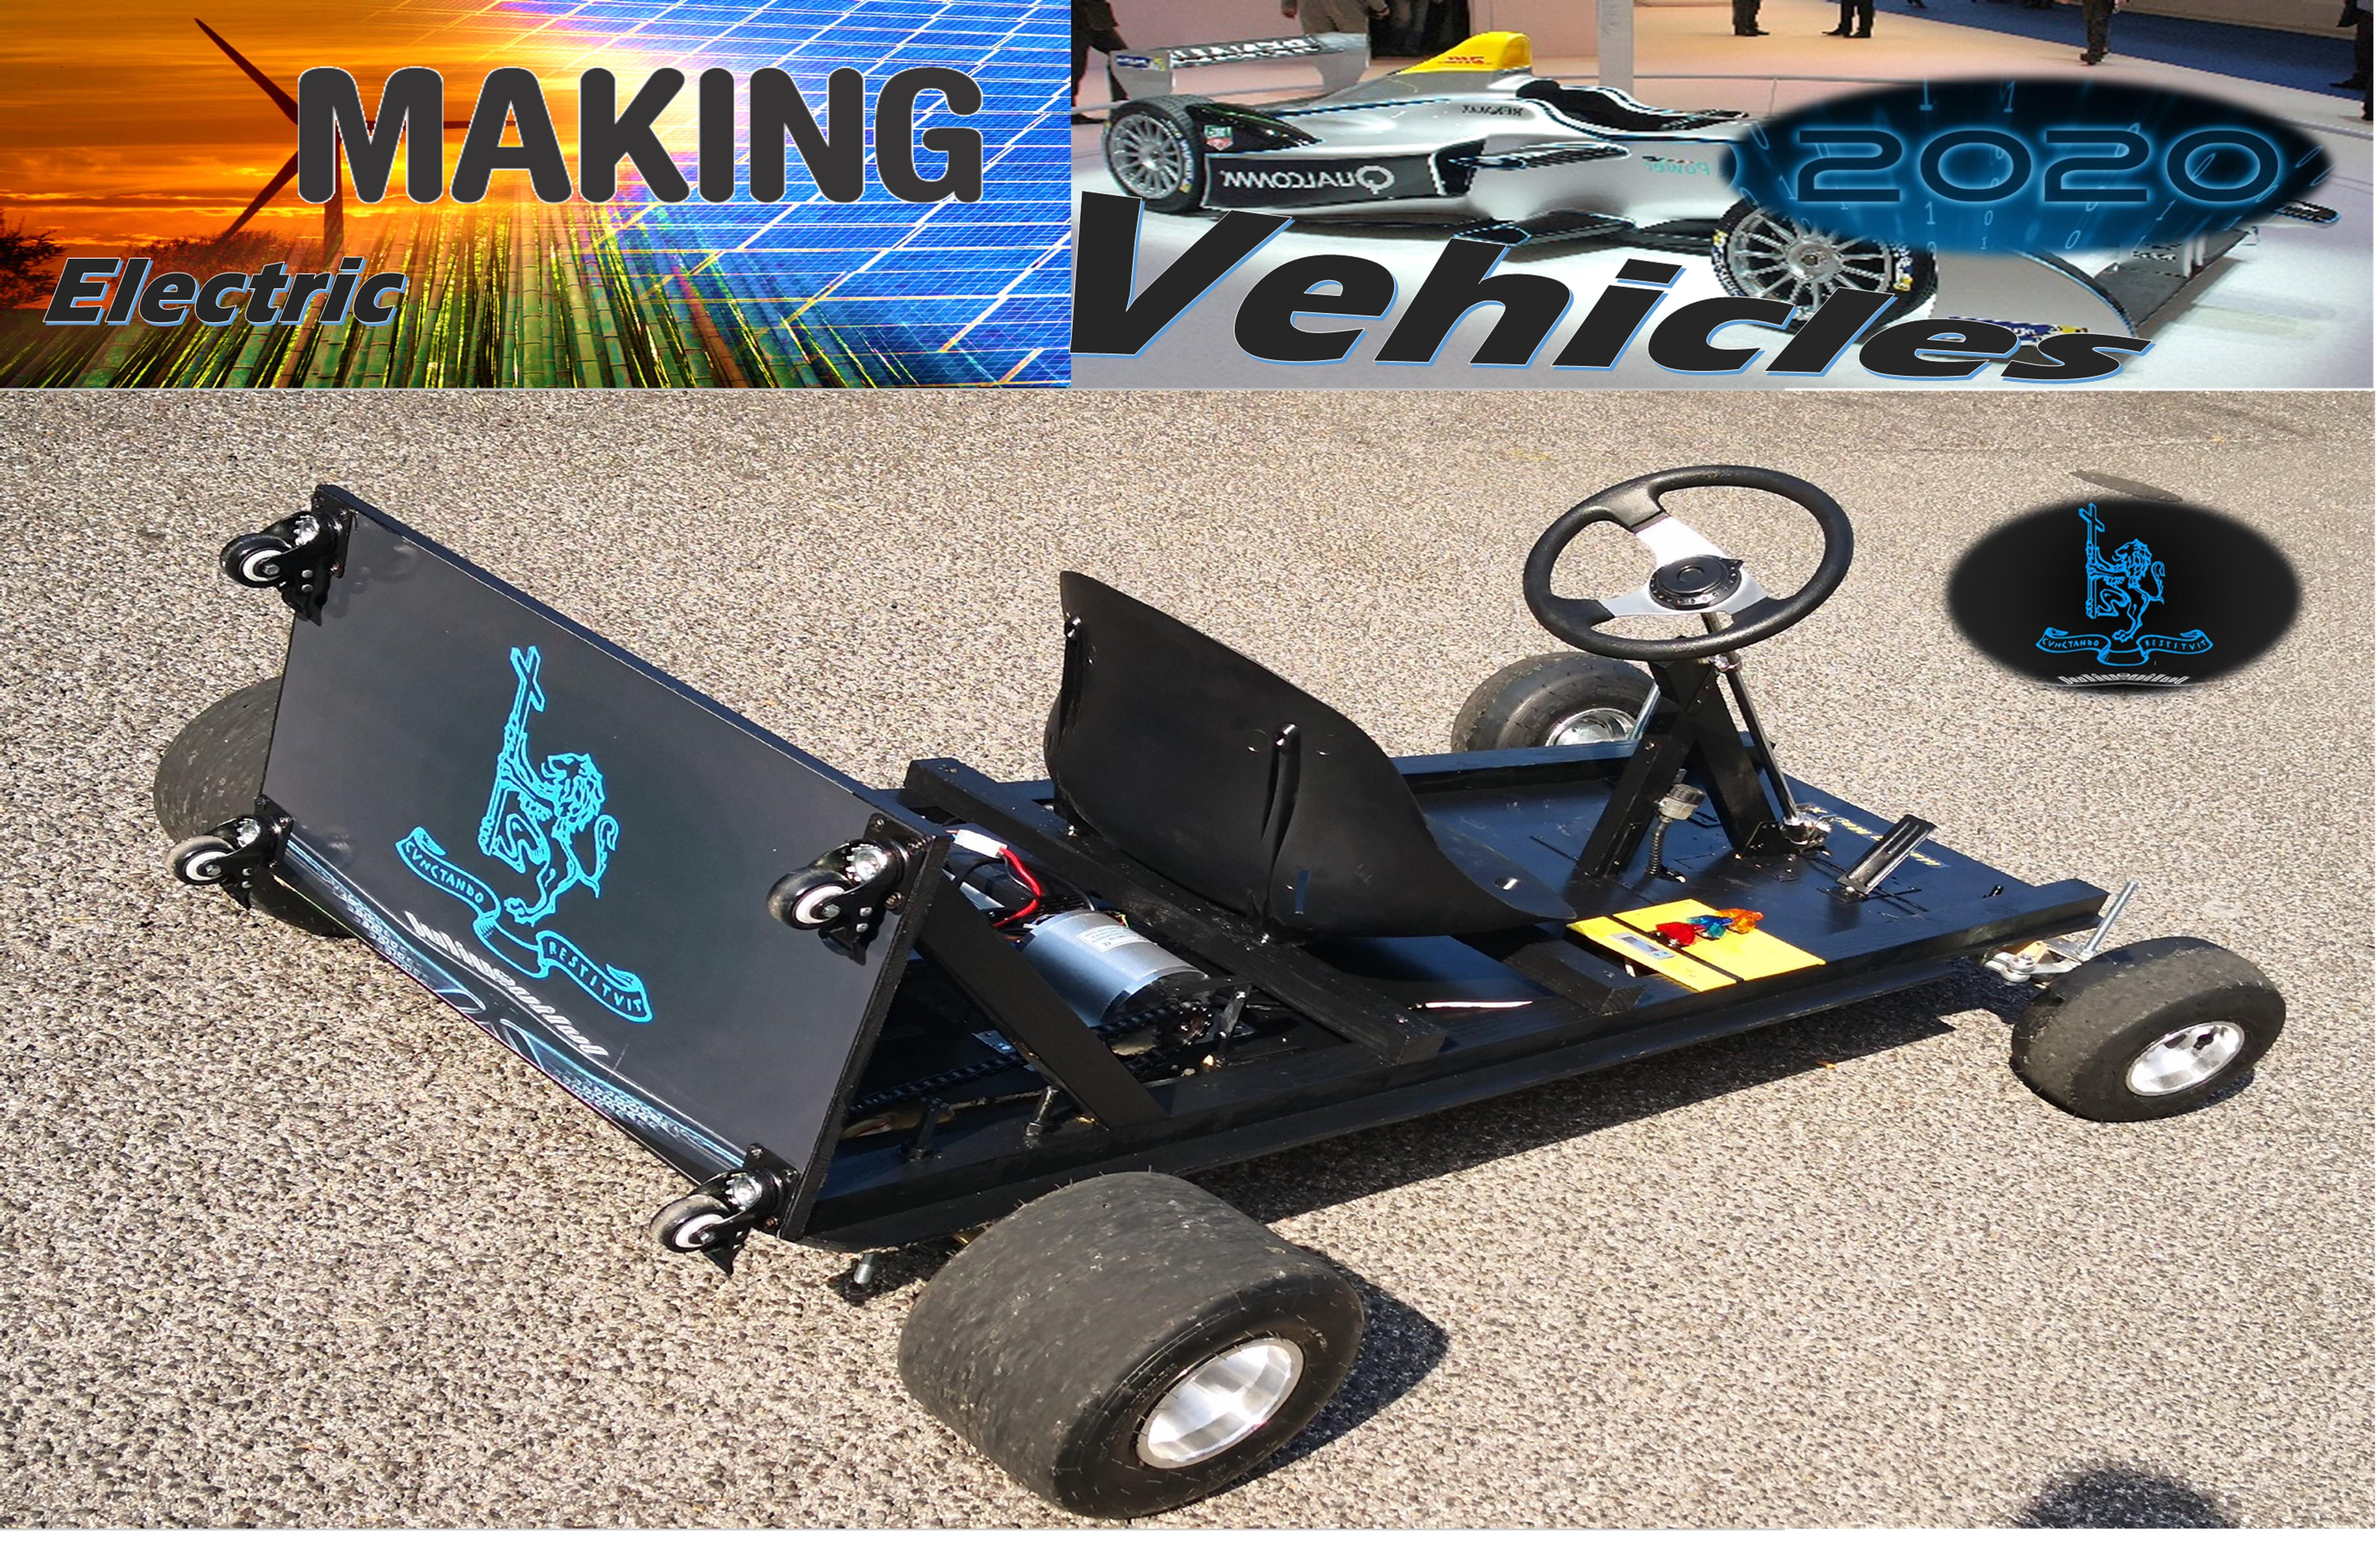 Making Electric Vehicles 2020: Kart building and driving for a Gran Prix